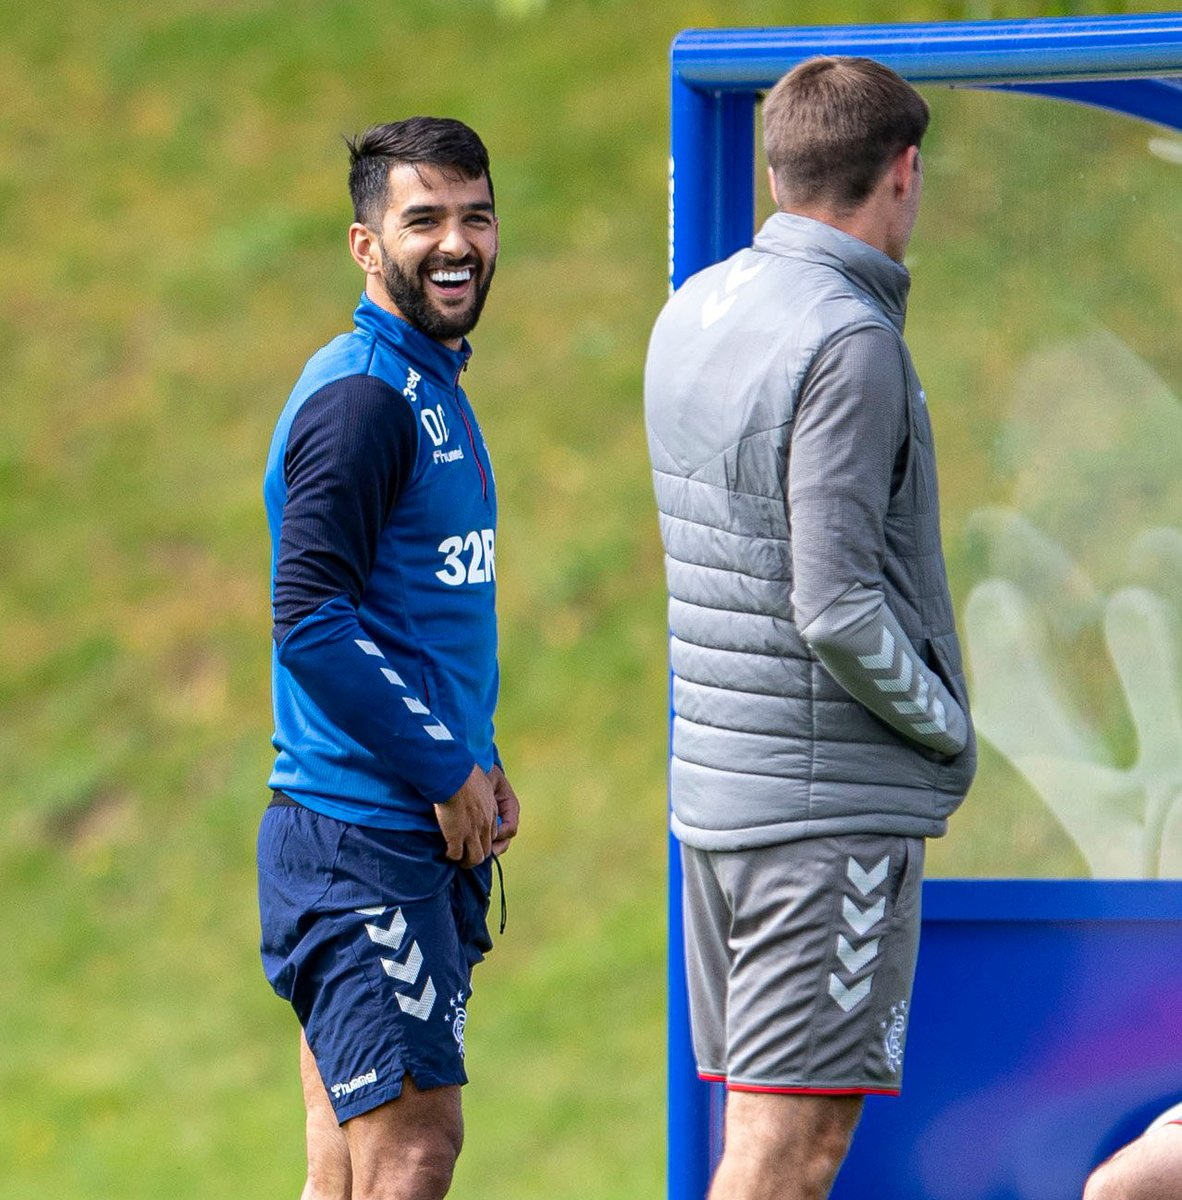 ✍️ TRANSFER NEWS ✍️ Daniel Candeias has completed his move from Rangers to Gençlerbirliği on a two-year contract.